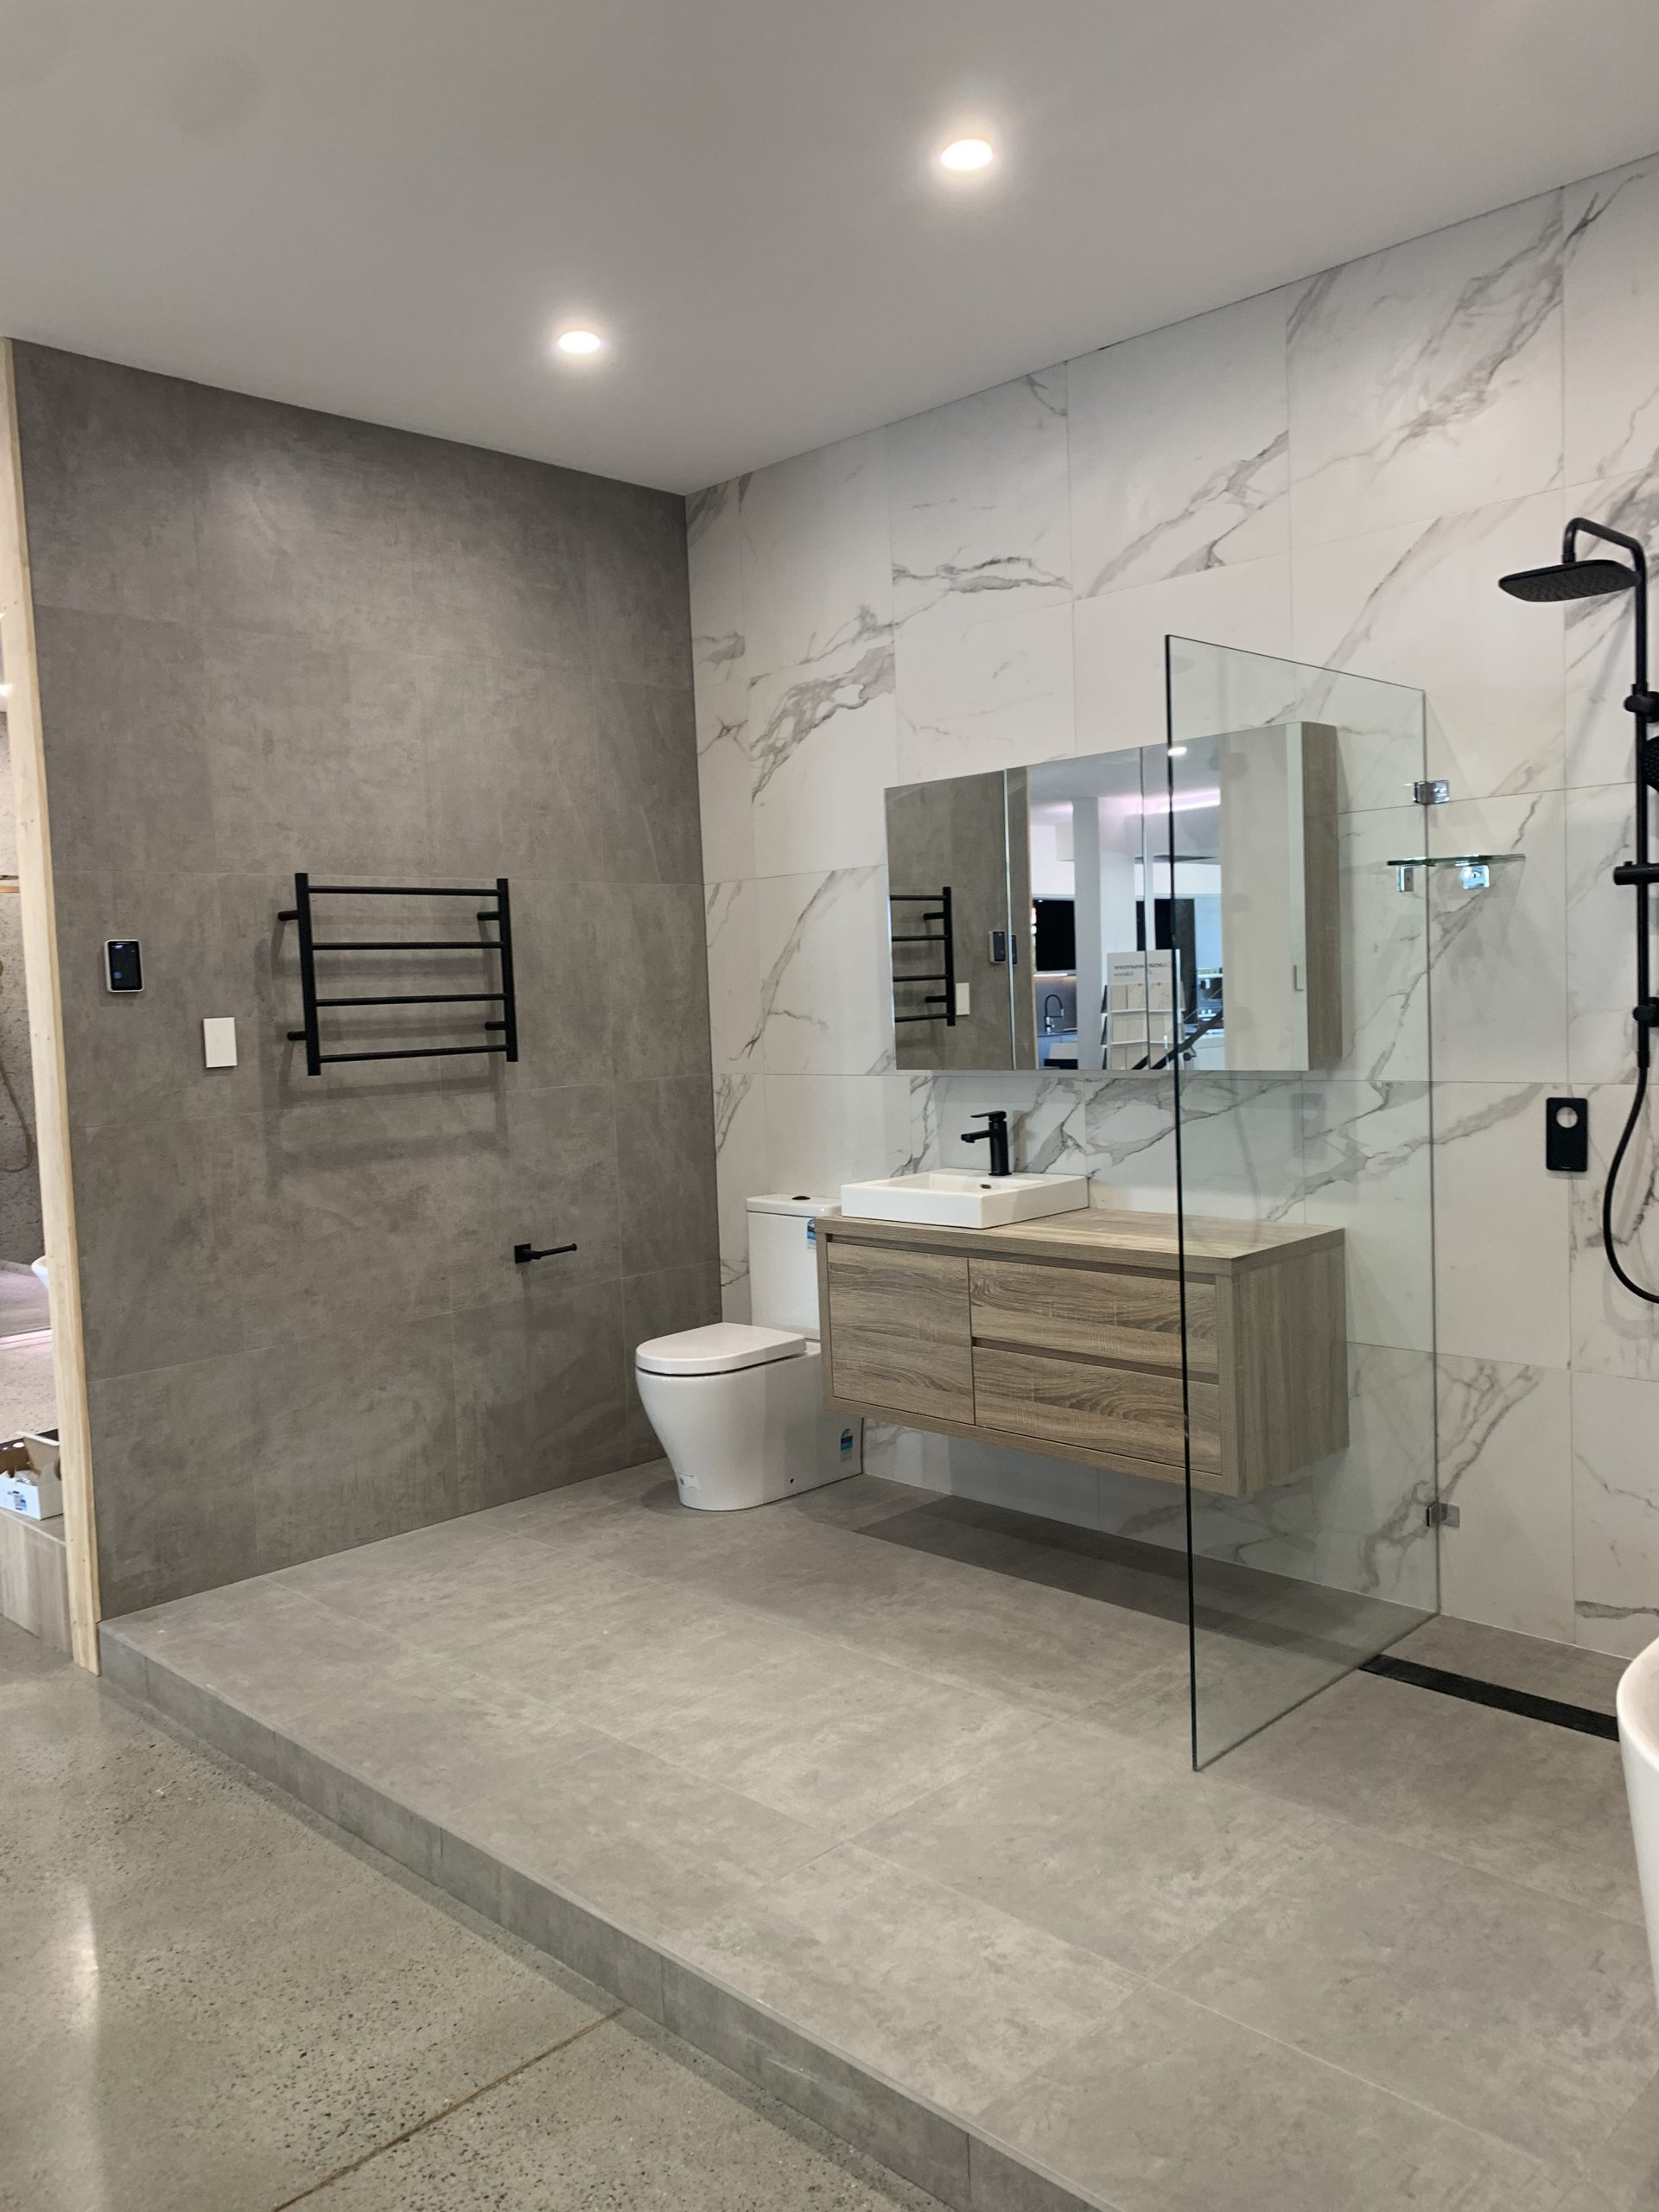 Fairmont Homes bathroom with inscreed heating and inslab heating